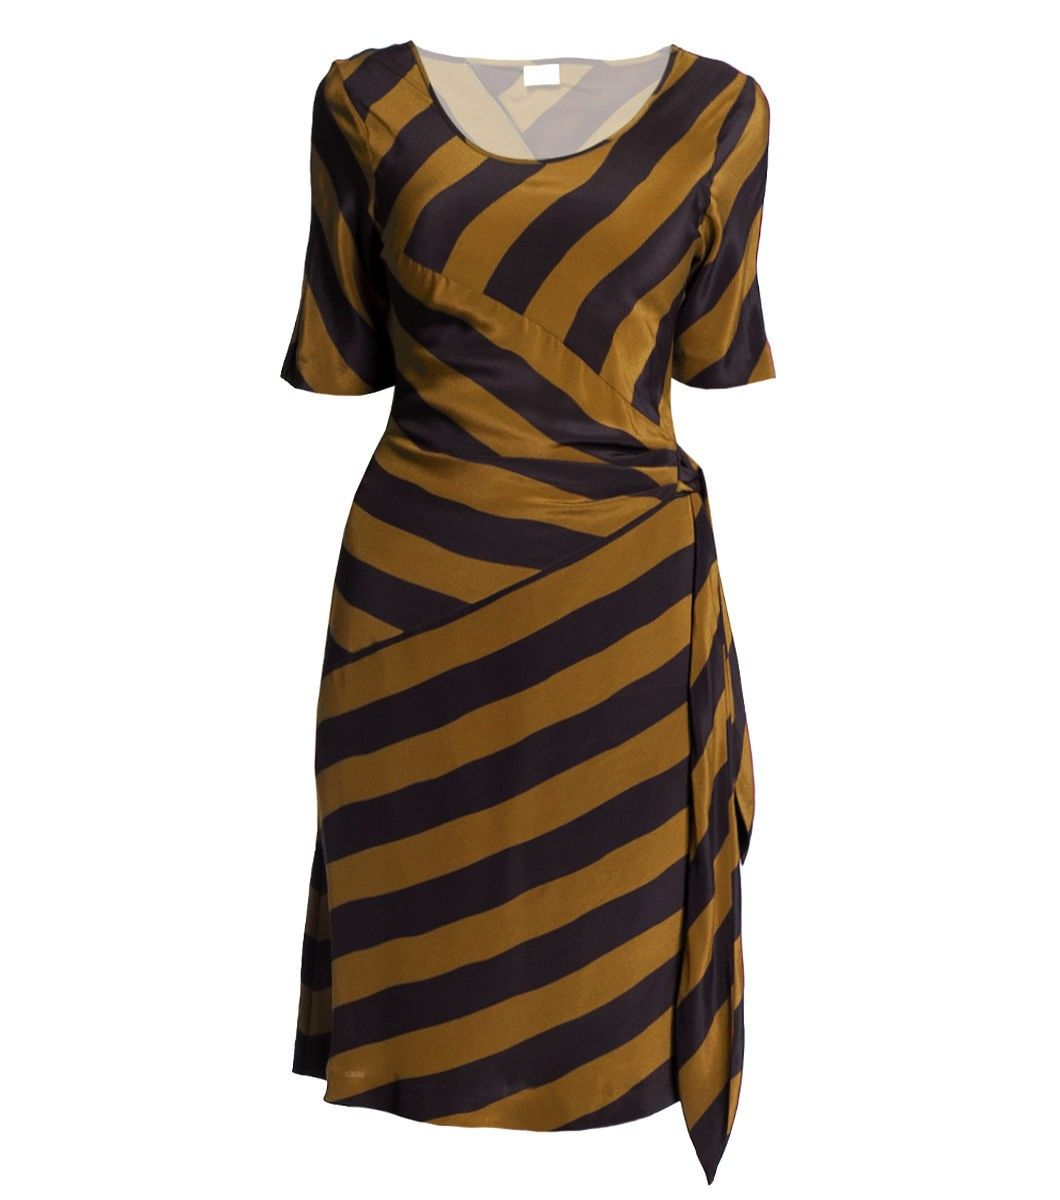 Tigeress Stripe Dress Style Clothes Wardrobes And Fashion